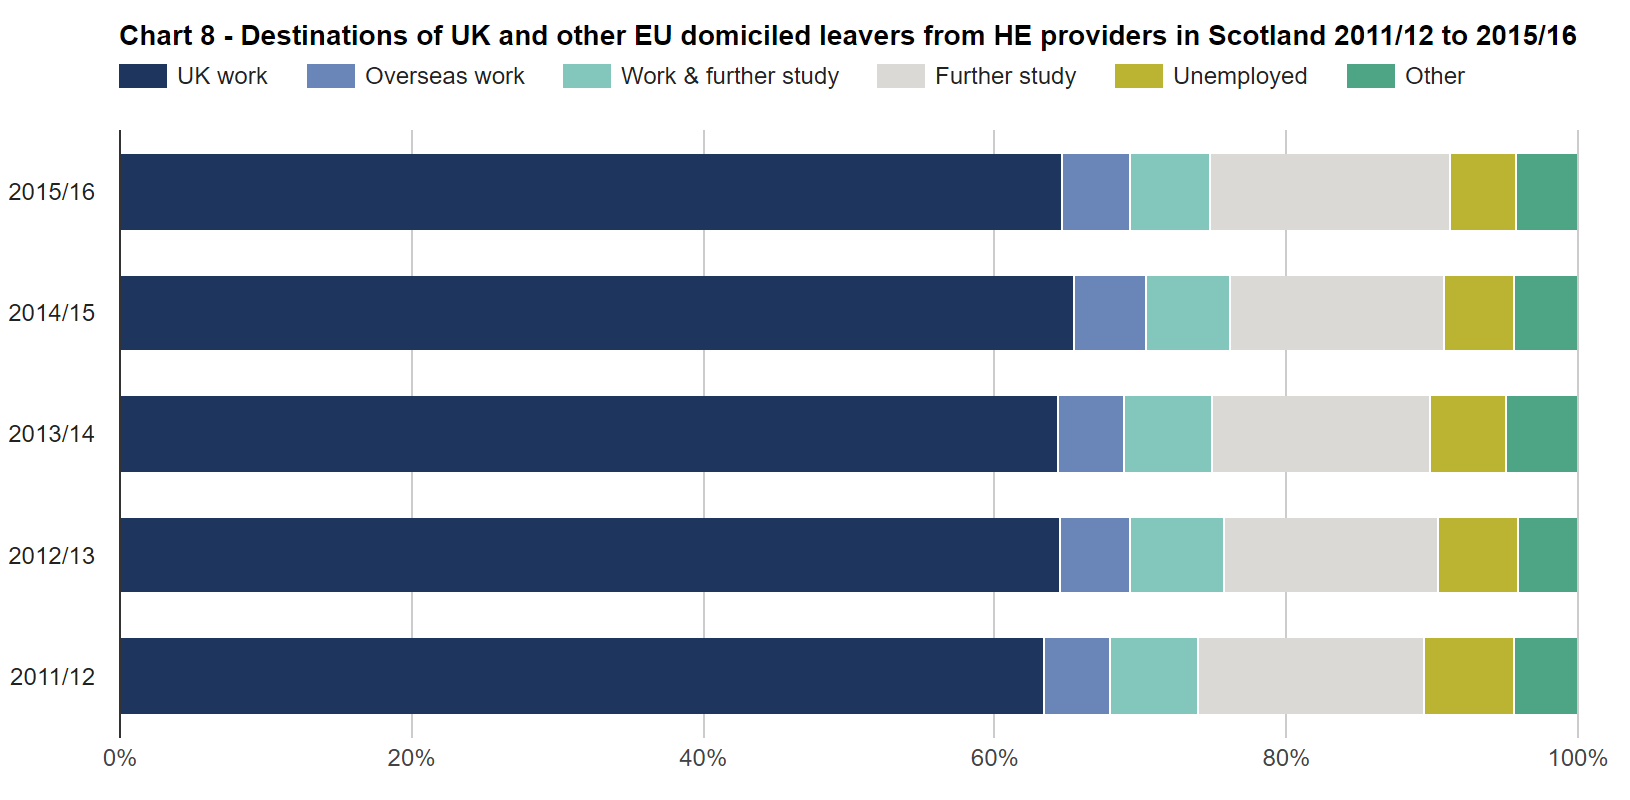 SFR245: Chart 8 - Destinations of UK and other EU domiciled leavers from HE providers in Scogtland 2011/12 to 2015/16